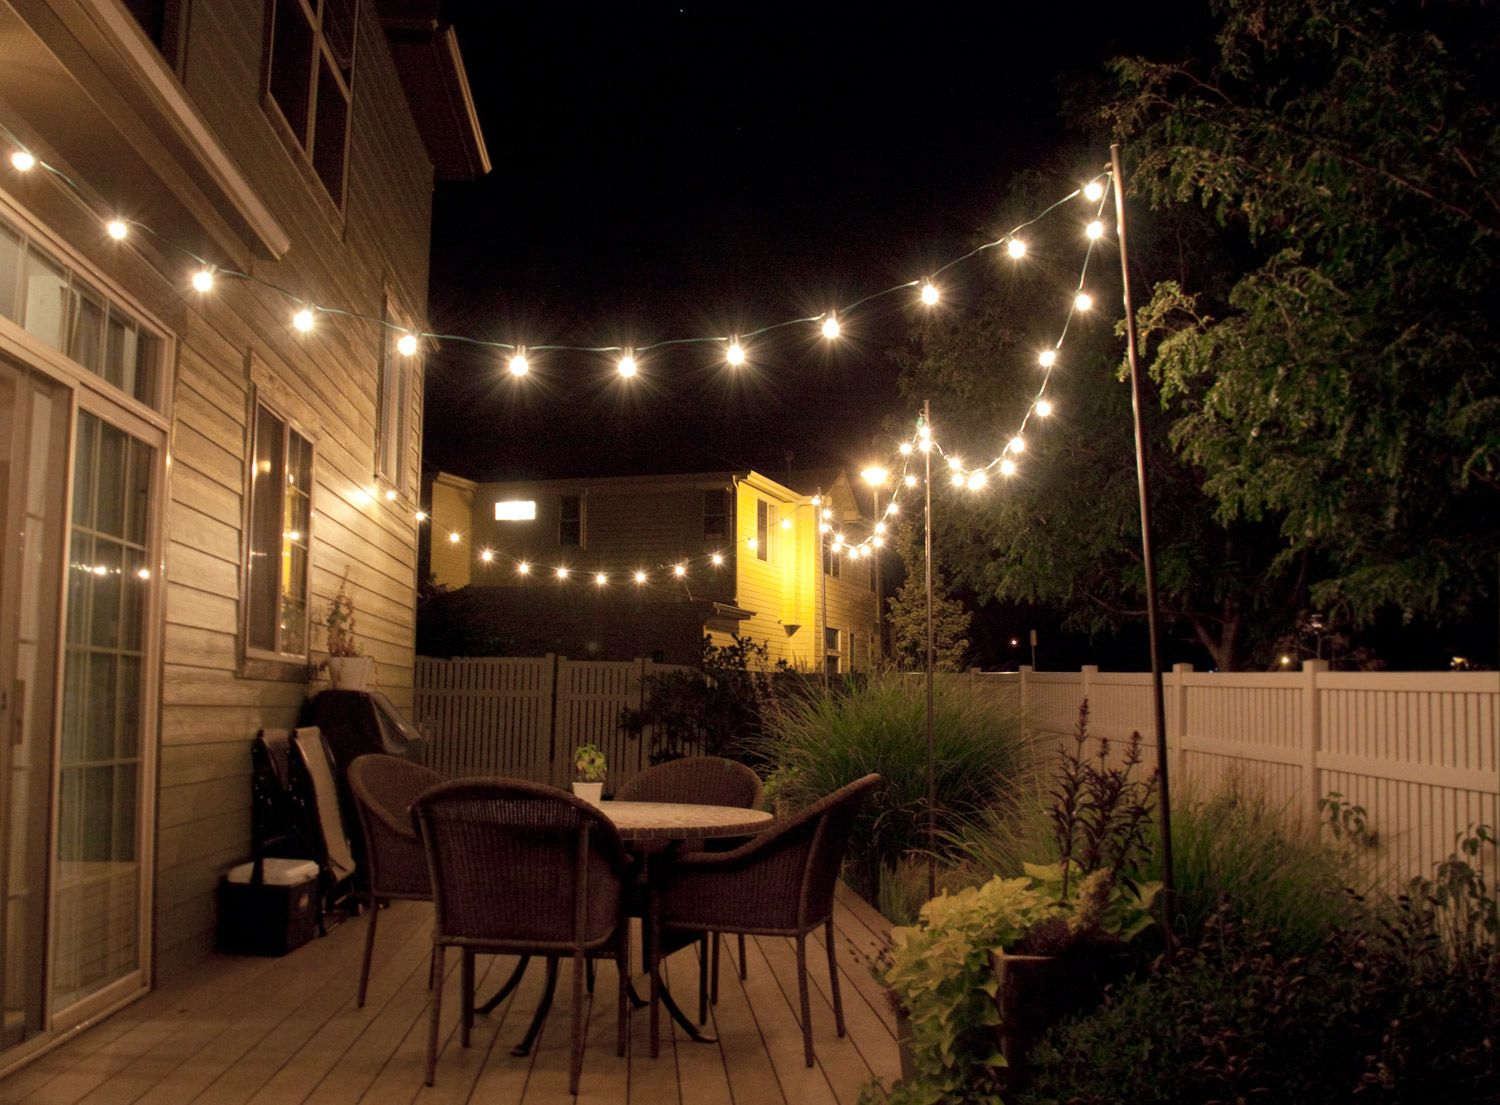 How To Hang String Lights In Backyard Without Trees Classy How To Make Inexpensive Poles To Hang String Lights On  Café Style Design Ideas